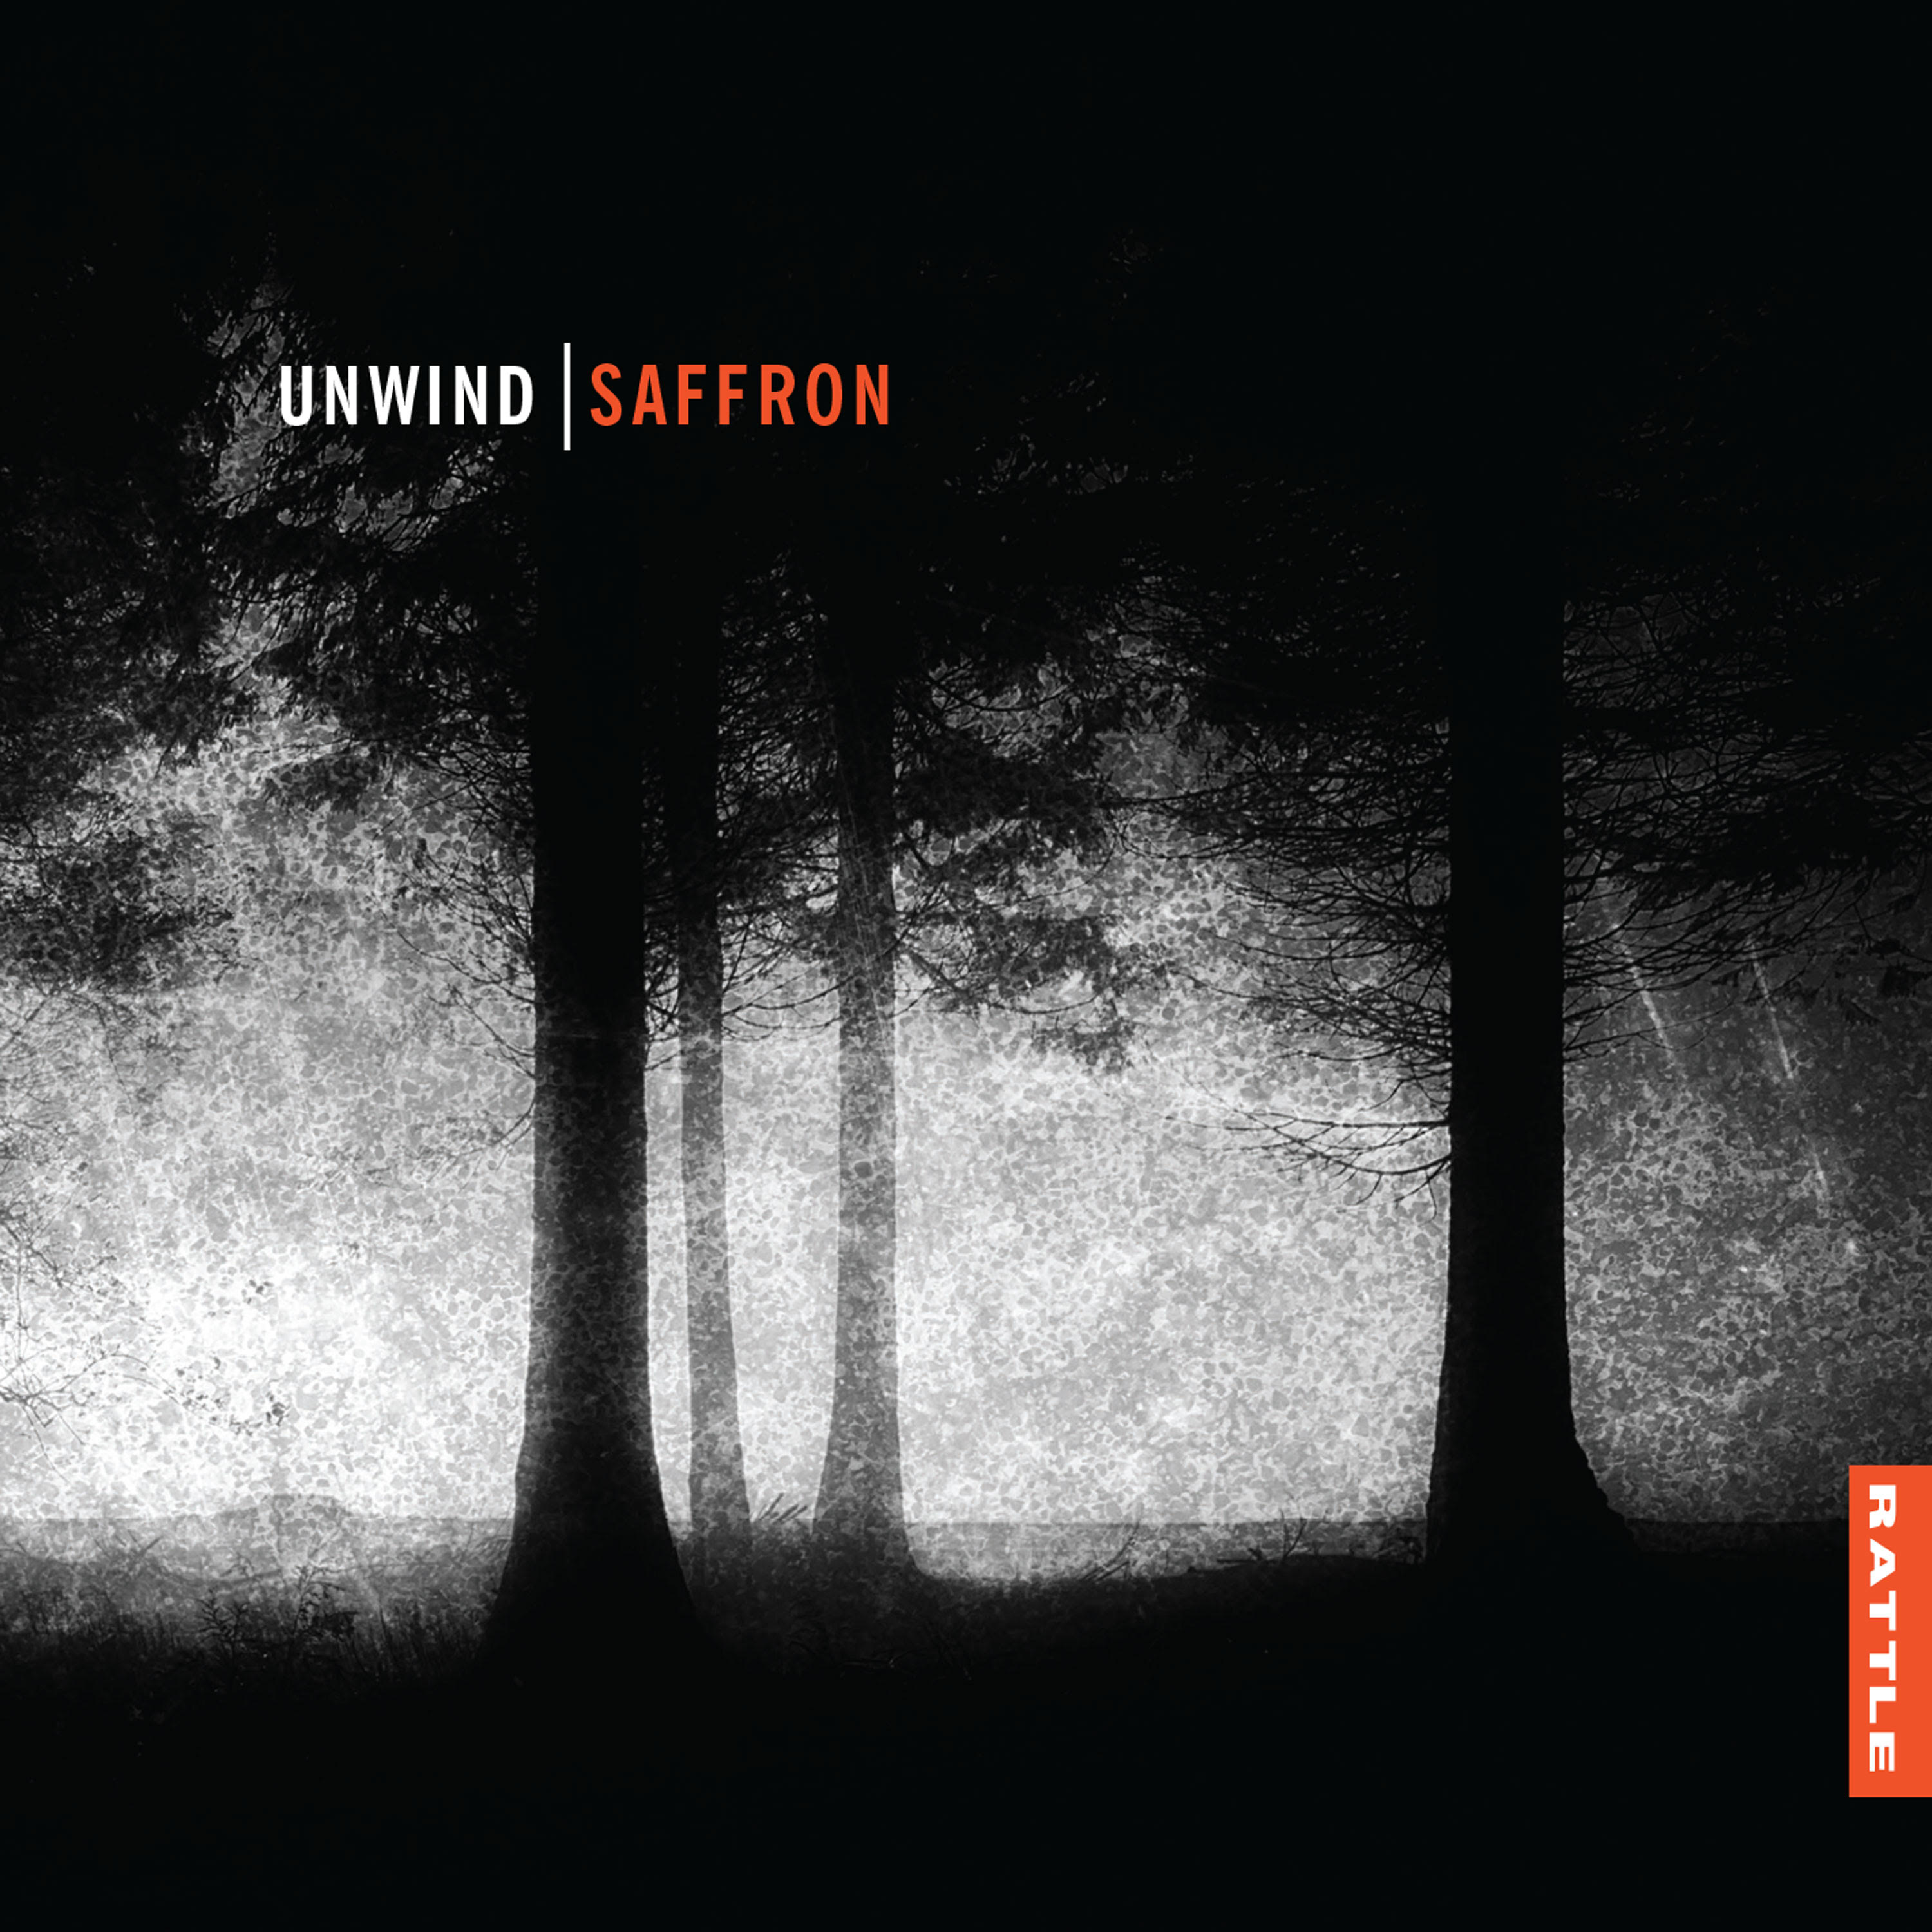 Unwind | Saffron - downloadable MP3 ALBUM